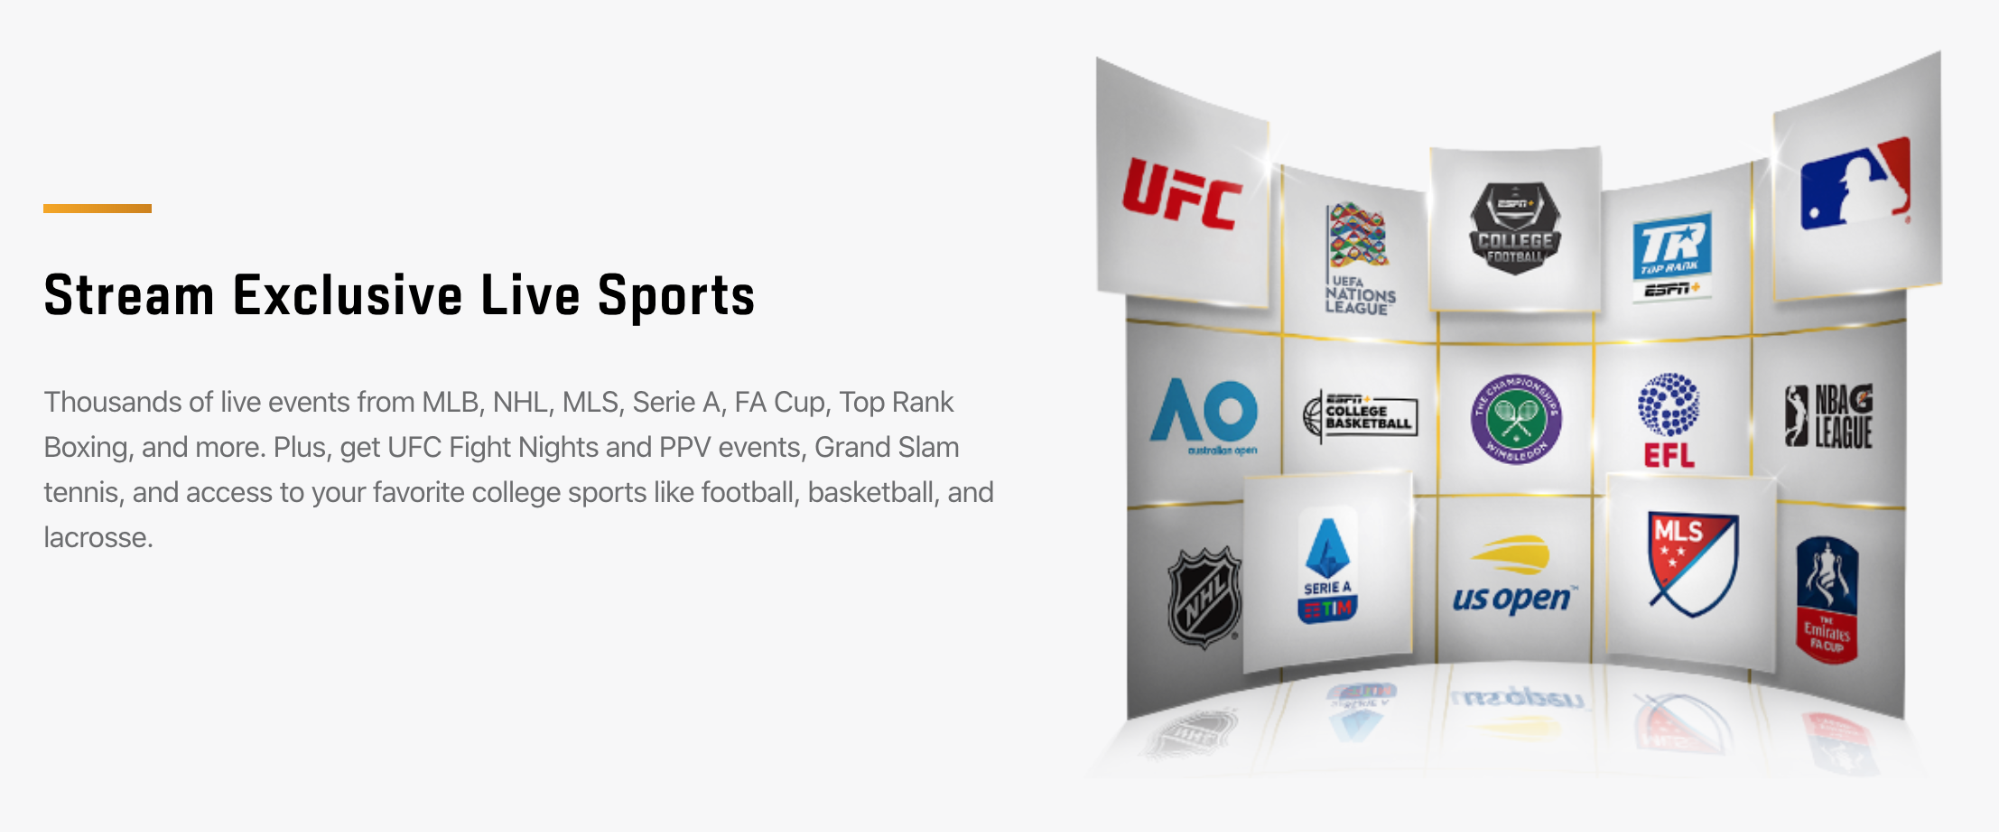 stream exclusive live sports espn plus